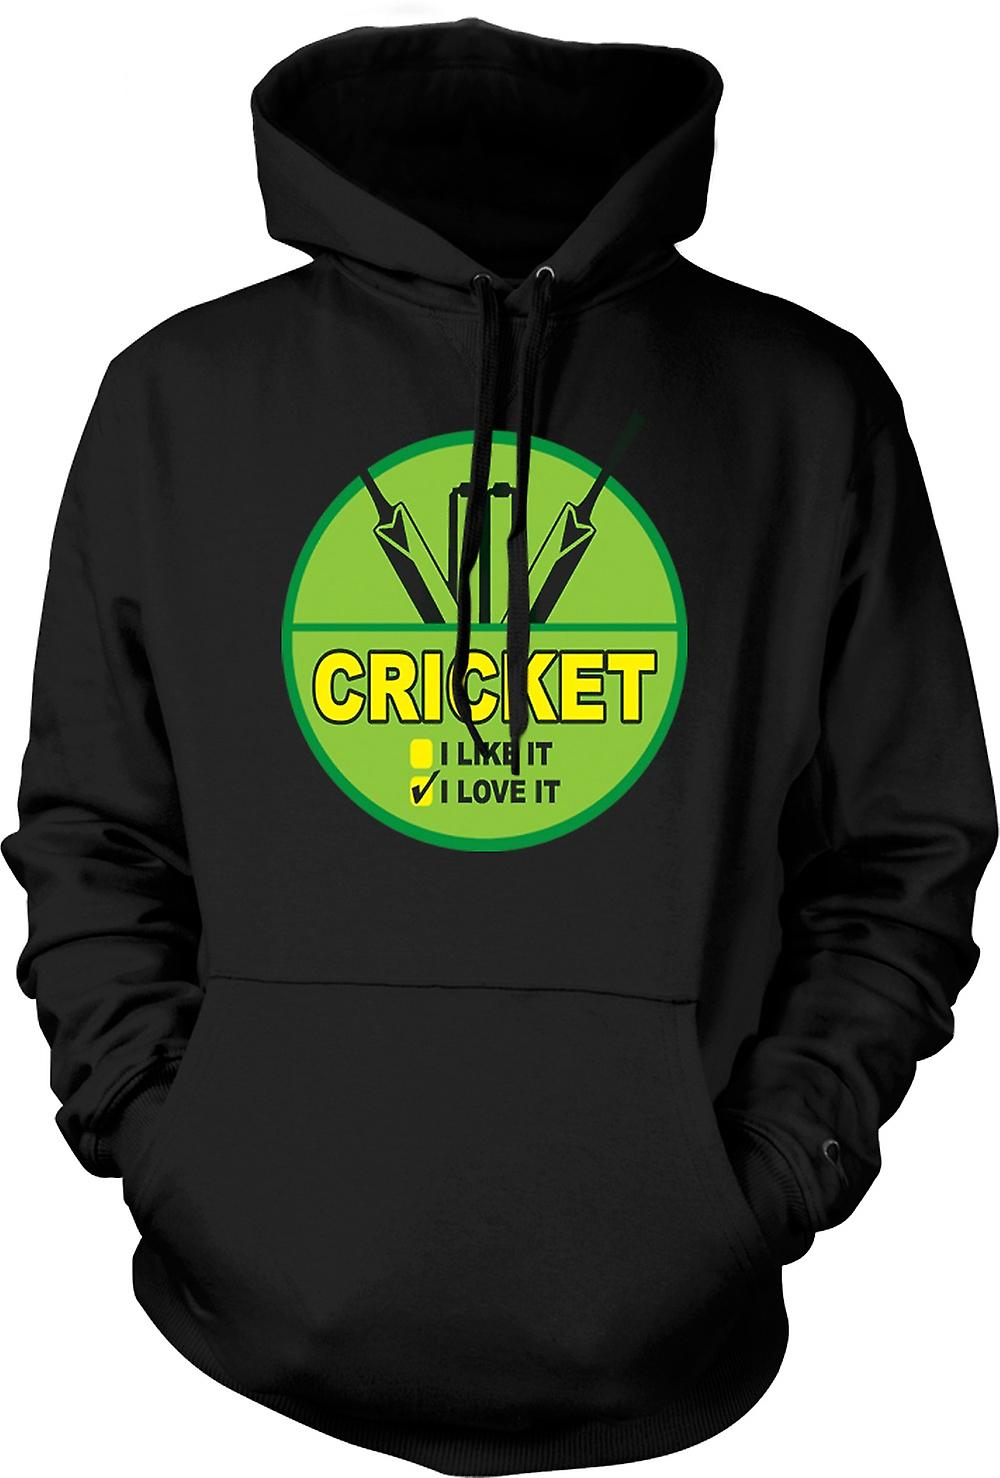 Mens Hoodie - Cricket I Love It - Funny